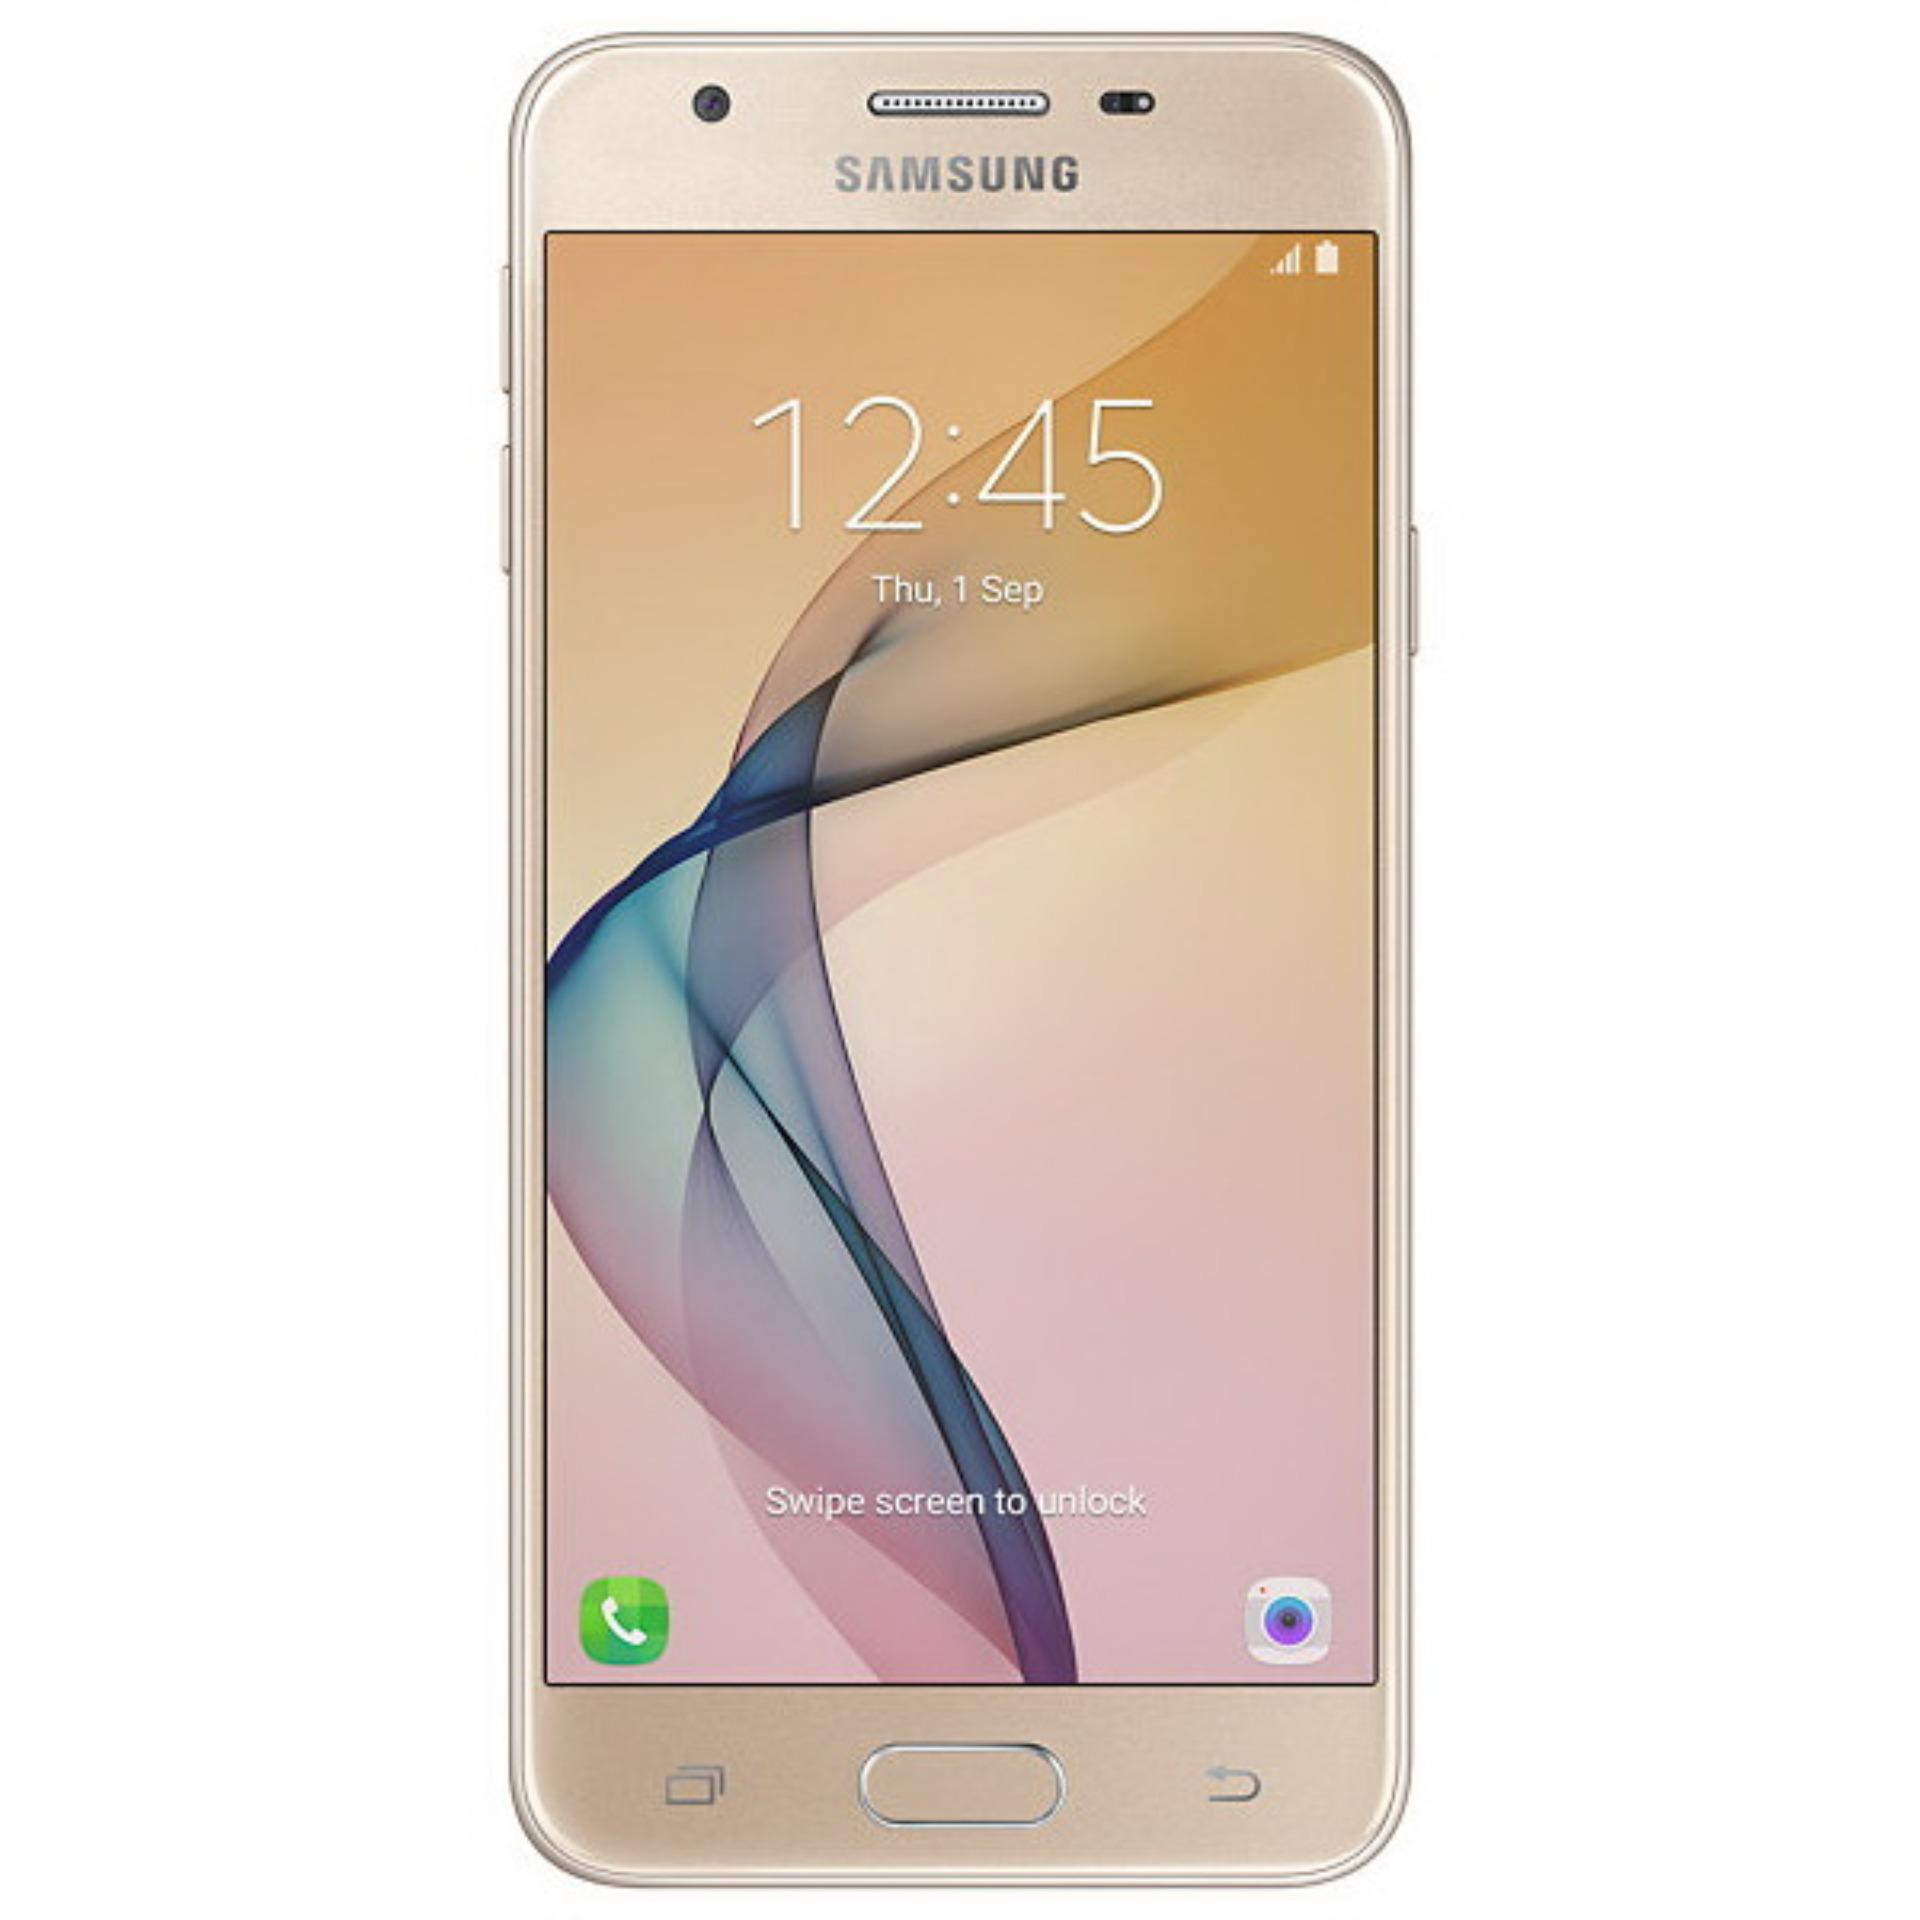 Samsung Galaxy J2 Prime 8GB LTE Gold (Export)